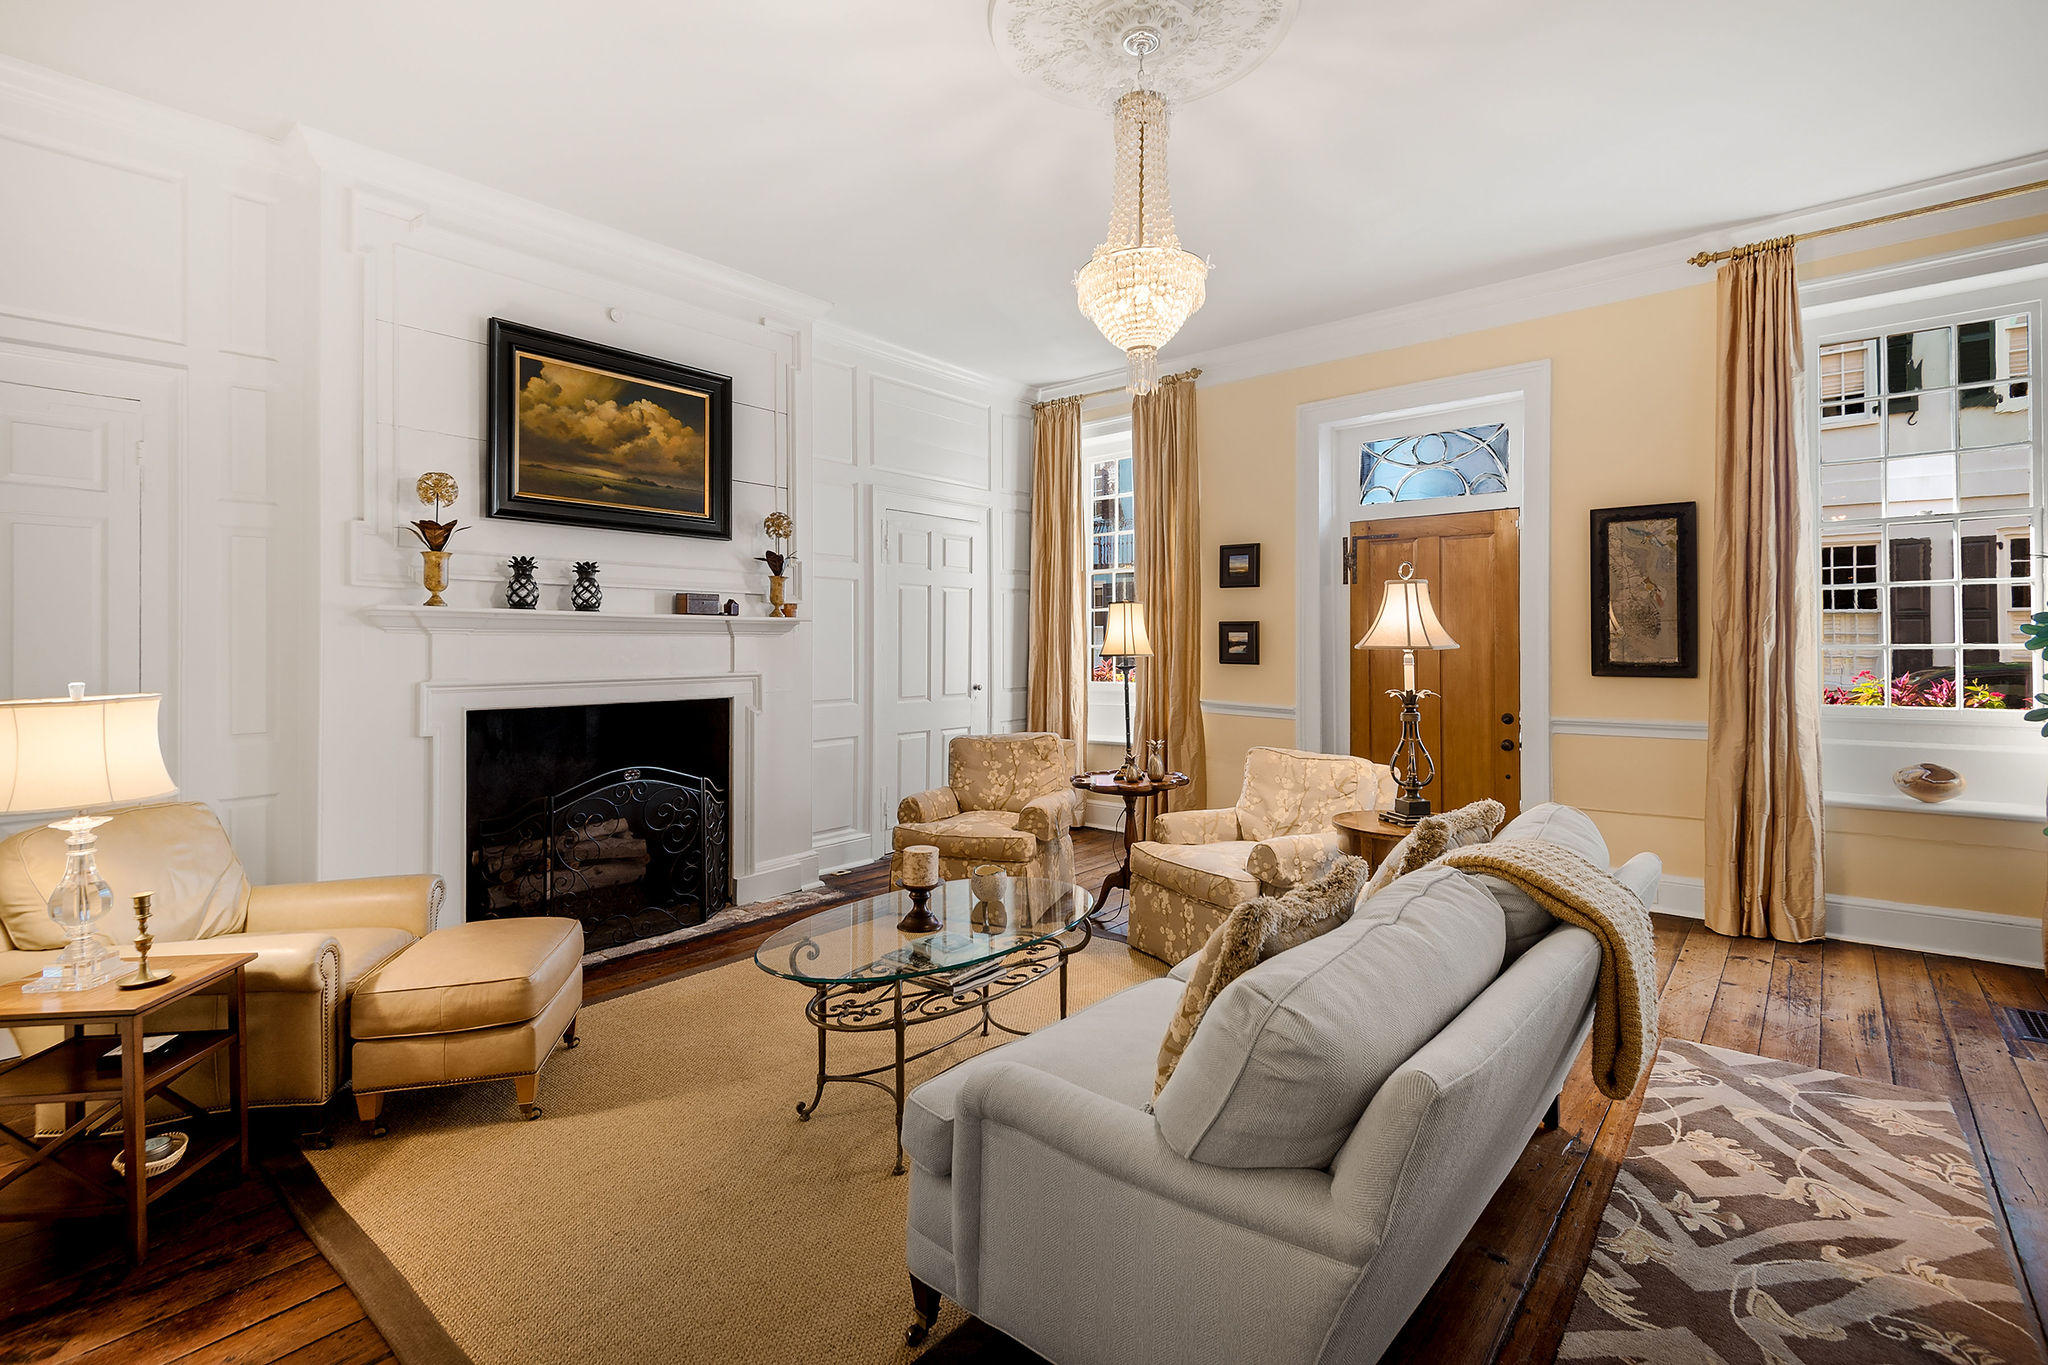 South of Broad Homes For Sale - 54 Tradd, Charleston, SC - 20